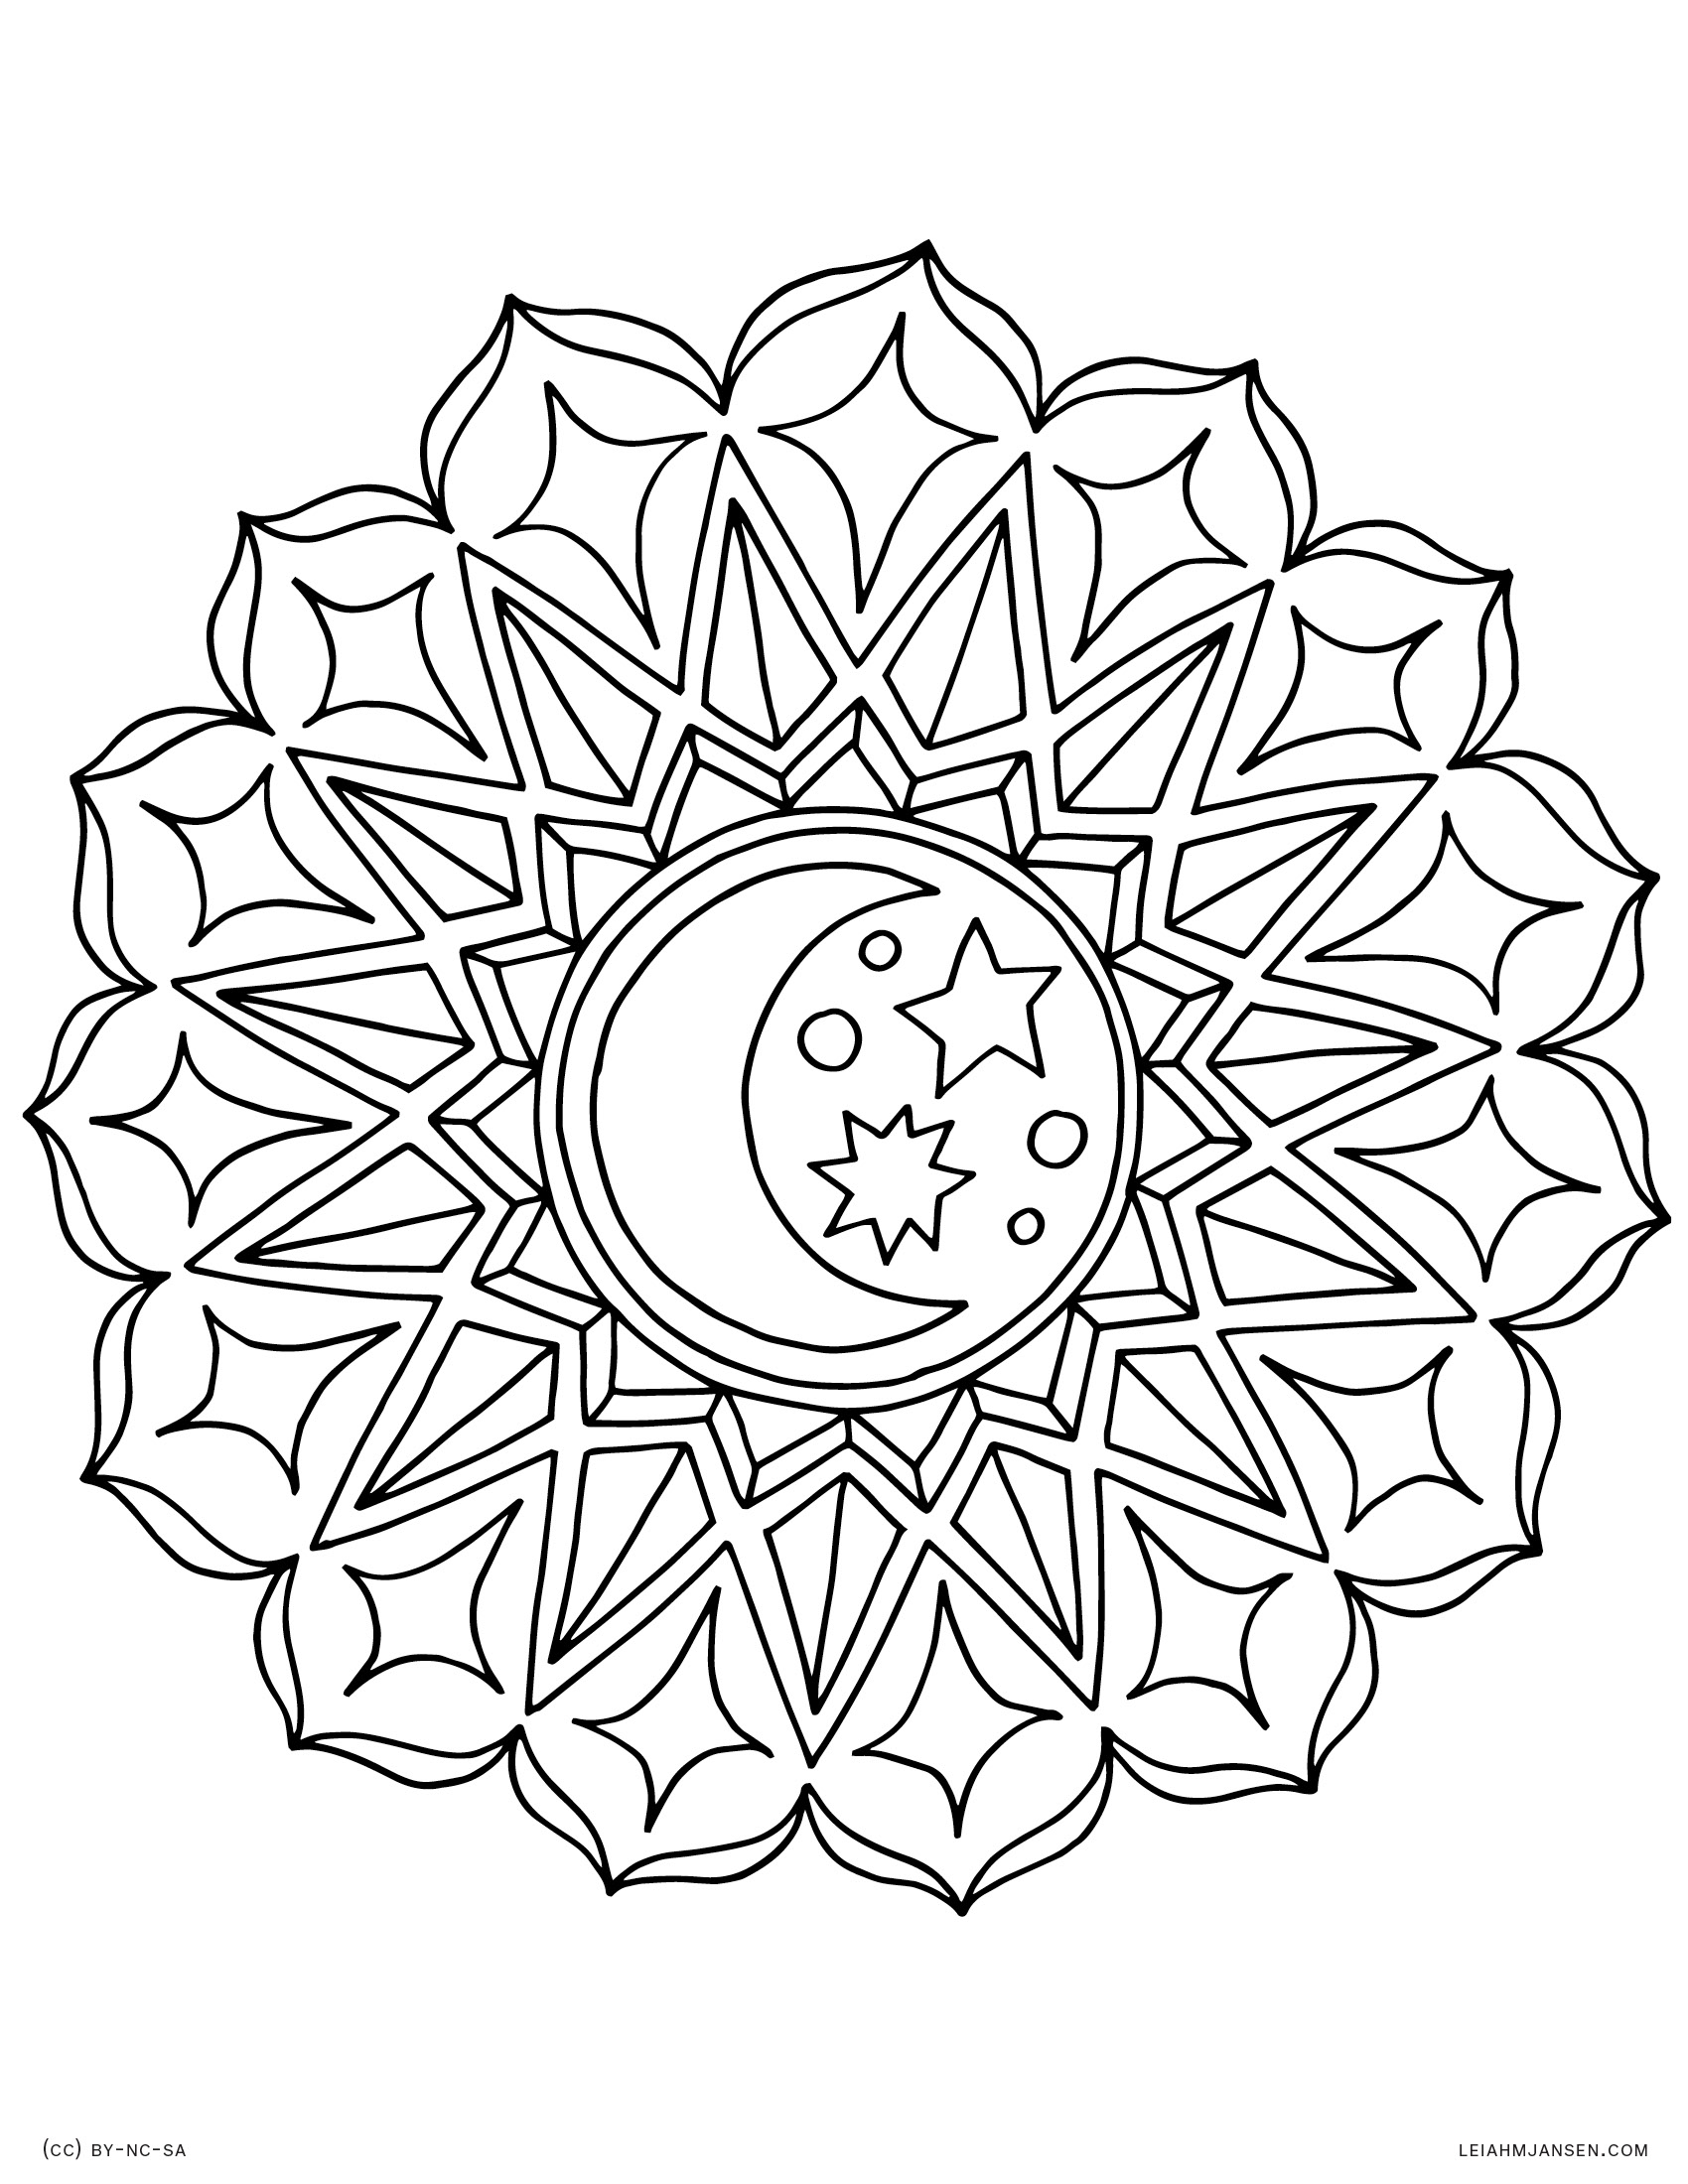 printable mandala coloring pages for kids - coloring pages